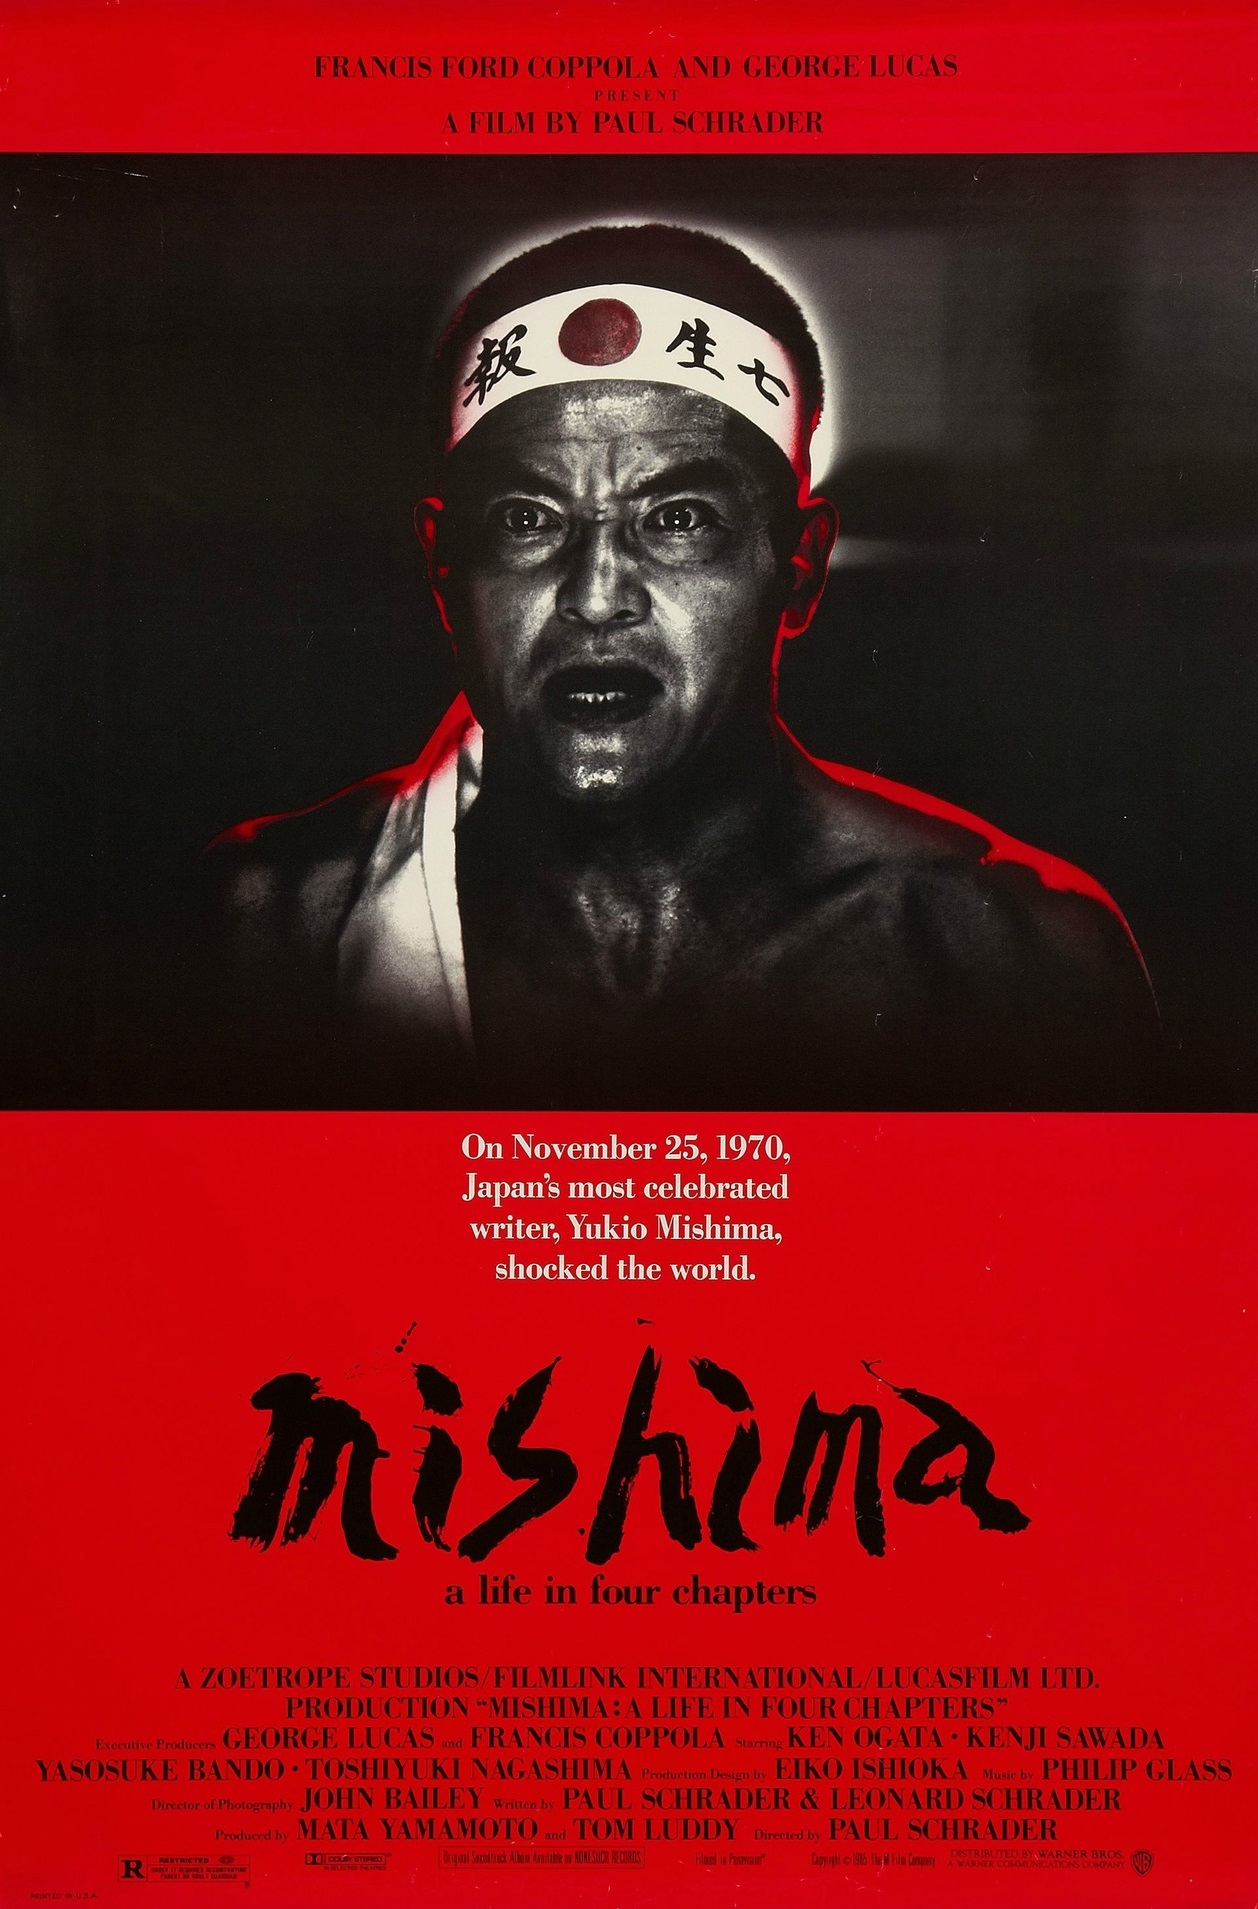 Mishima: A Life in Four Chapters (1985) - Directed by: Paul SchraderStarring: Ken Ogata, Masayuki Shionoya, Hiroshi MikamiRated: RRunning Time: 2hTMM Score: 5 stars out of 5STRENGTHS: Directorial Vision, Cinematography, Production Design, Acting, ScoreWEAKNESSES: Are you kidding? Who could find a weakness in this film.